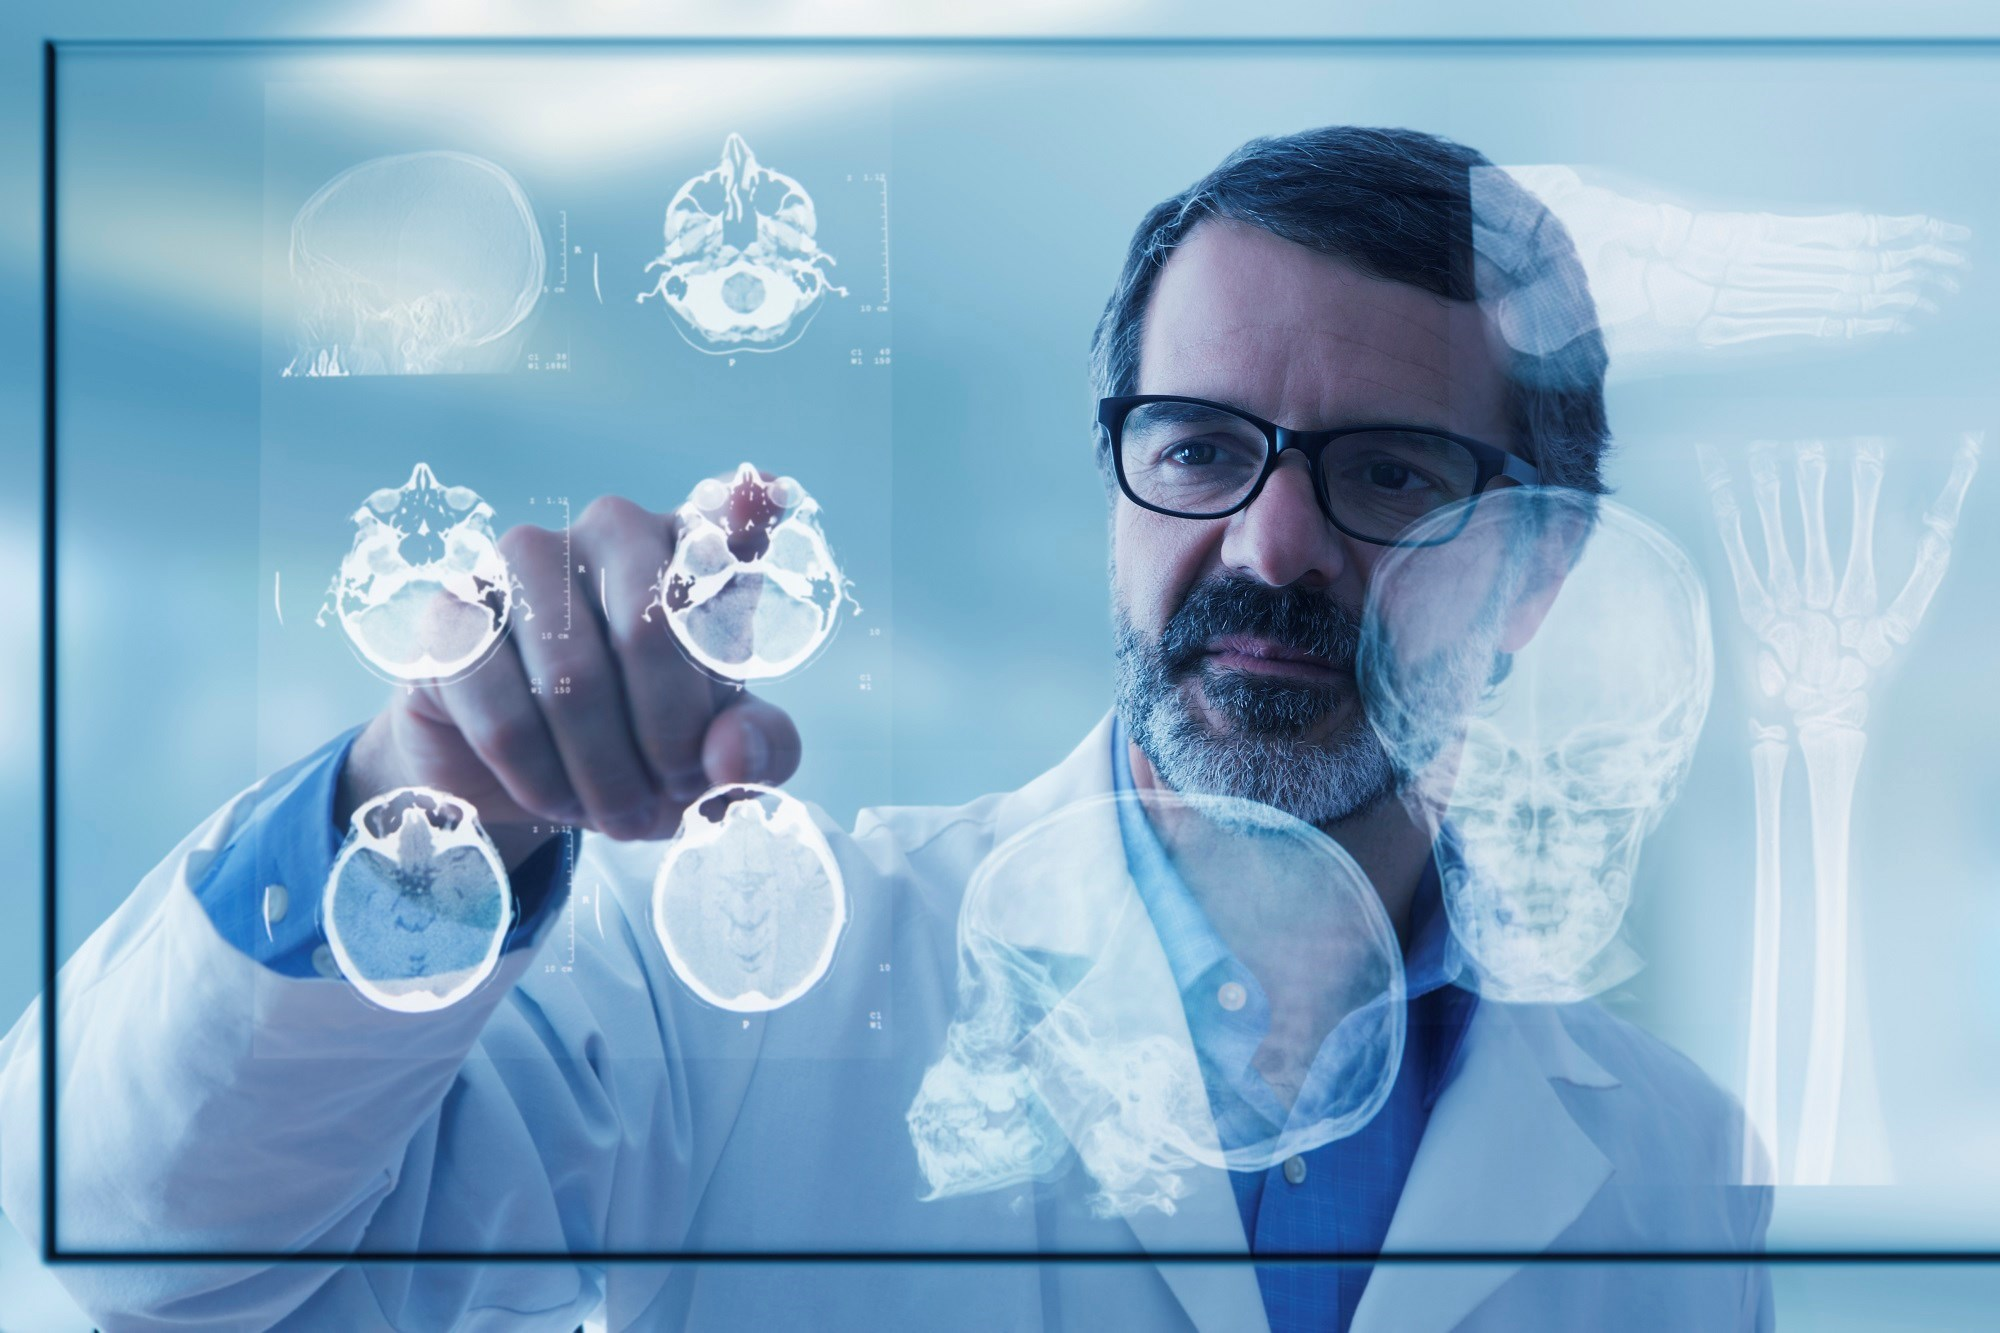 Health-related AI solutions in the pipeline or currently available should enhance physician and patient decision-making to advance improved health outcomes.